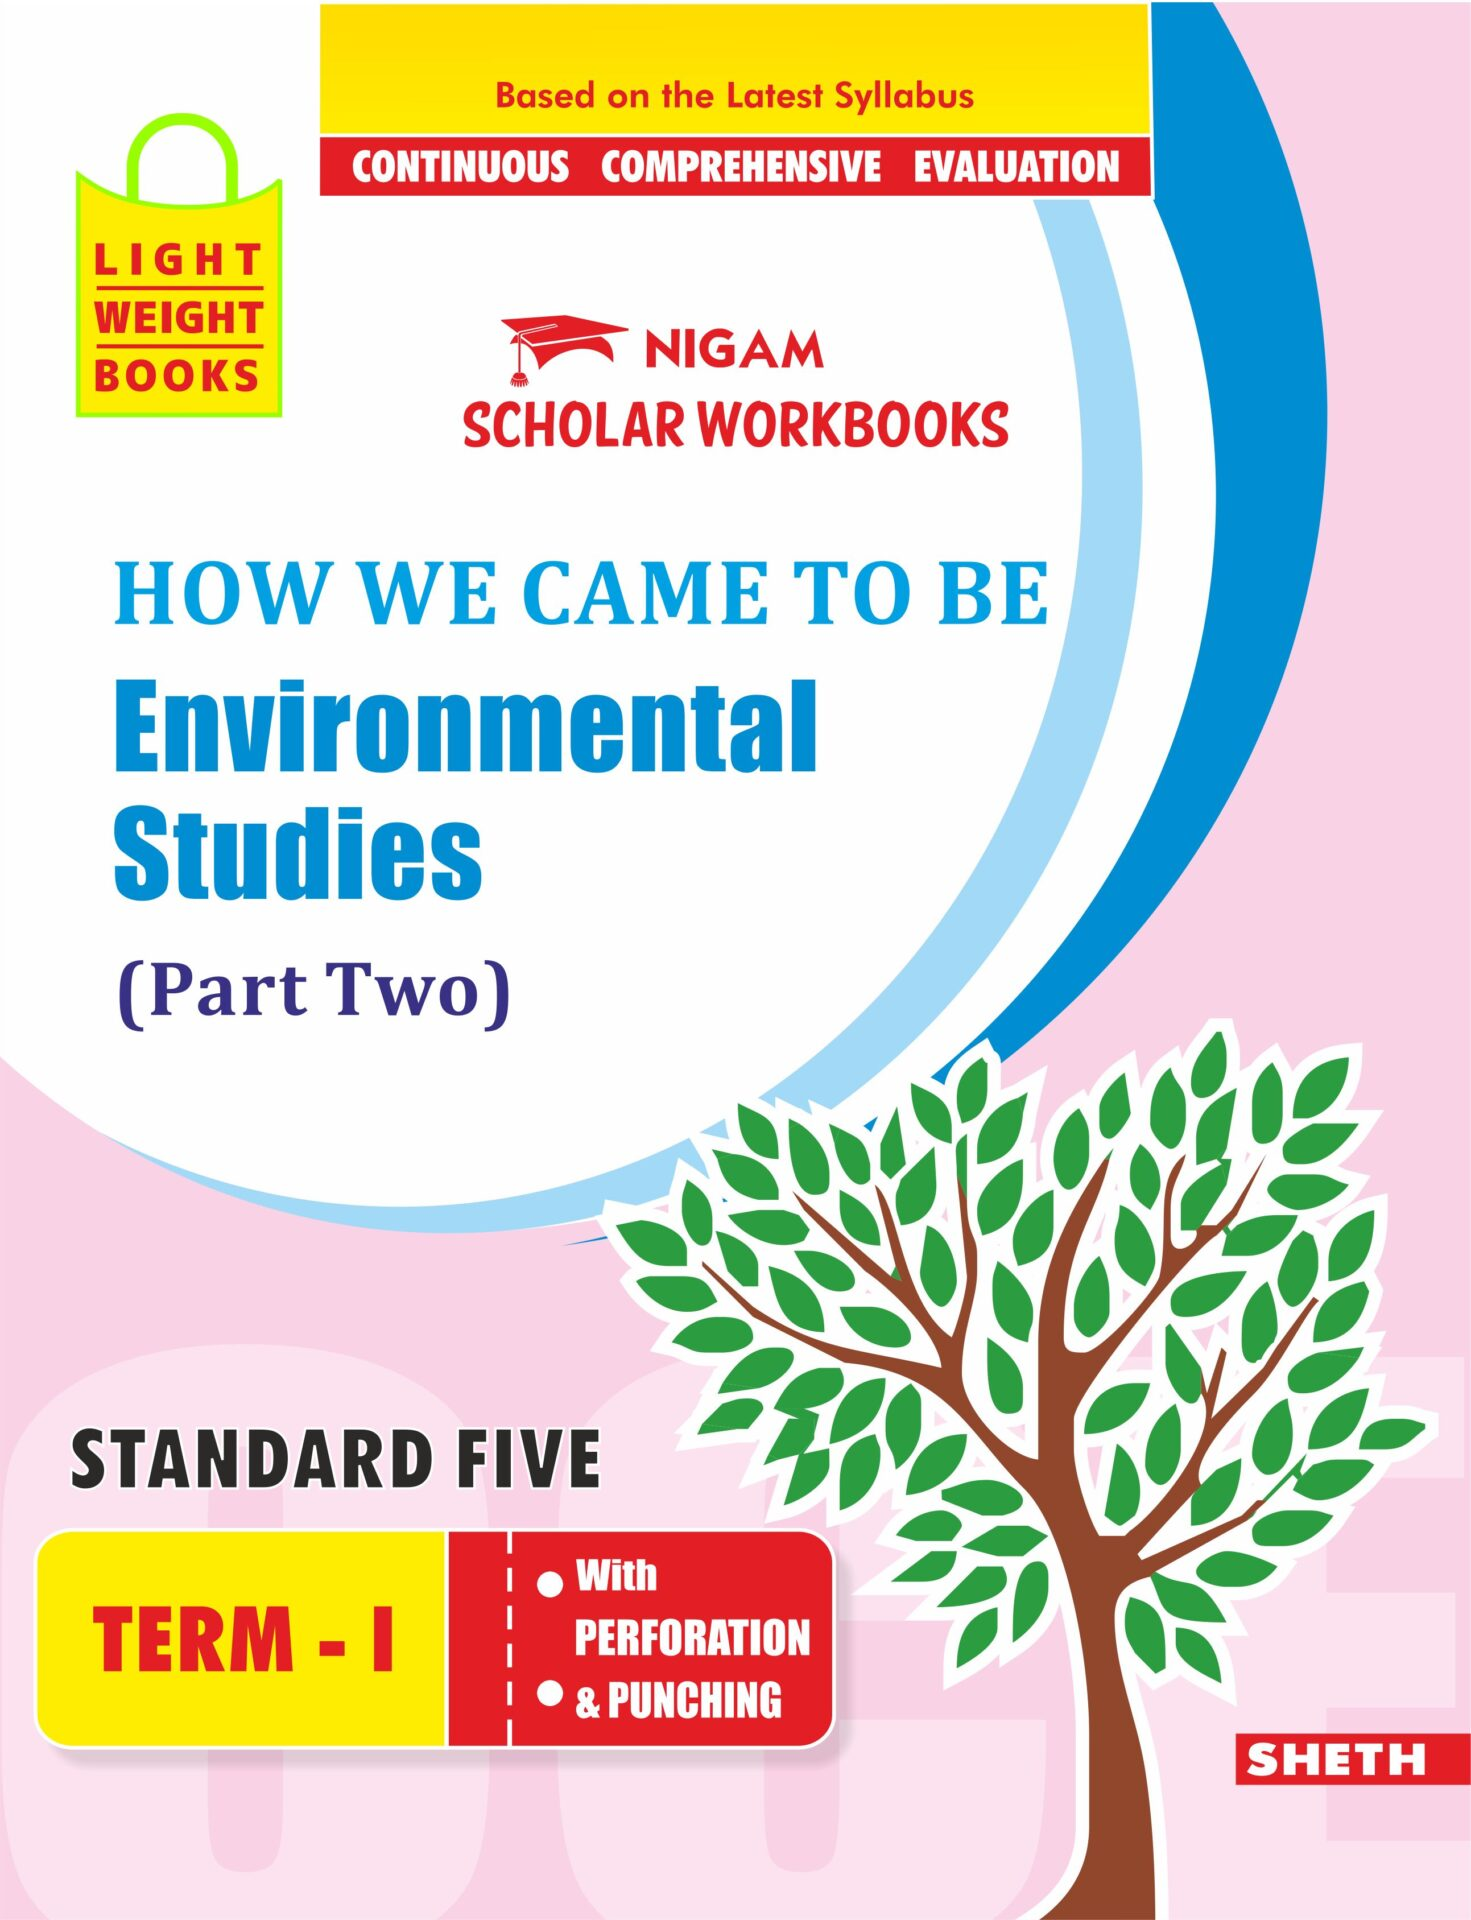 CCE Pattern Nigam Scholar Workbooks How We Came to Be Environmental Studies EVS Part Two Standard 5 Term 1 1